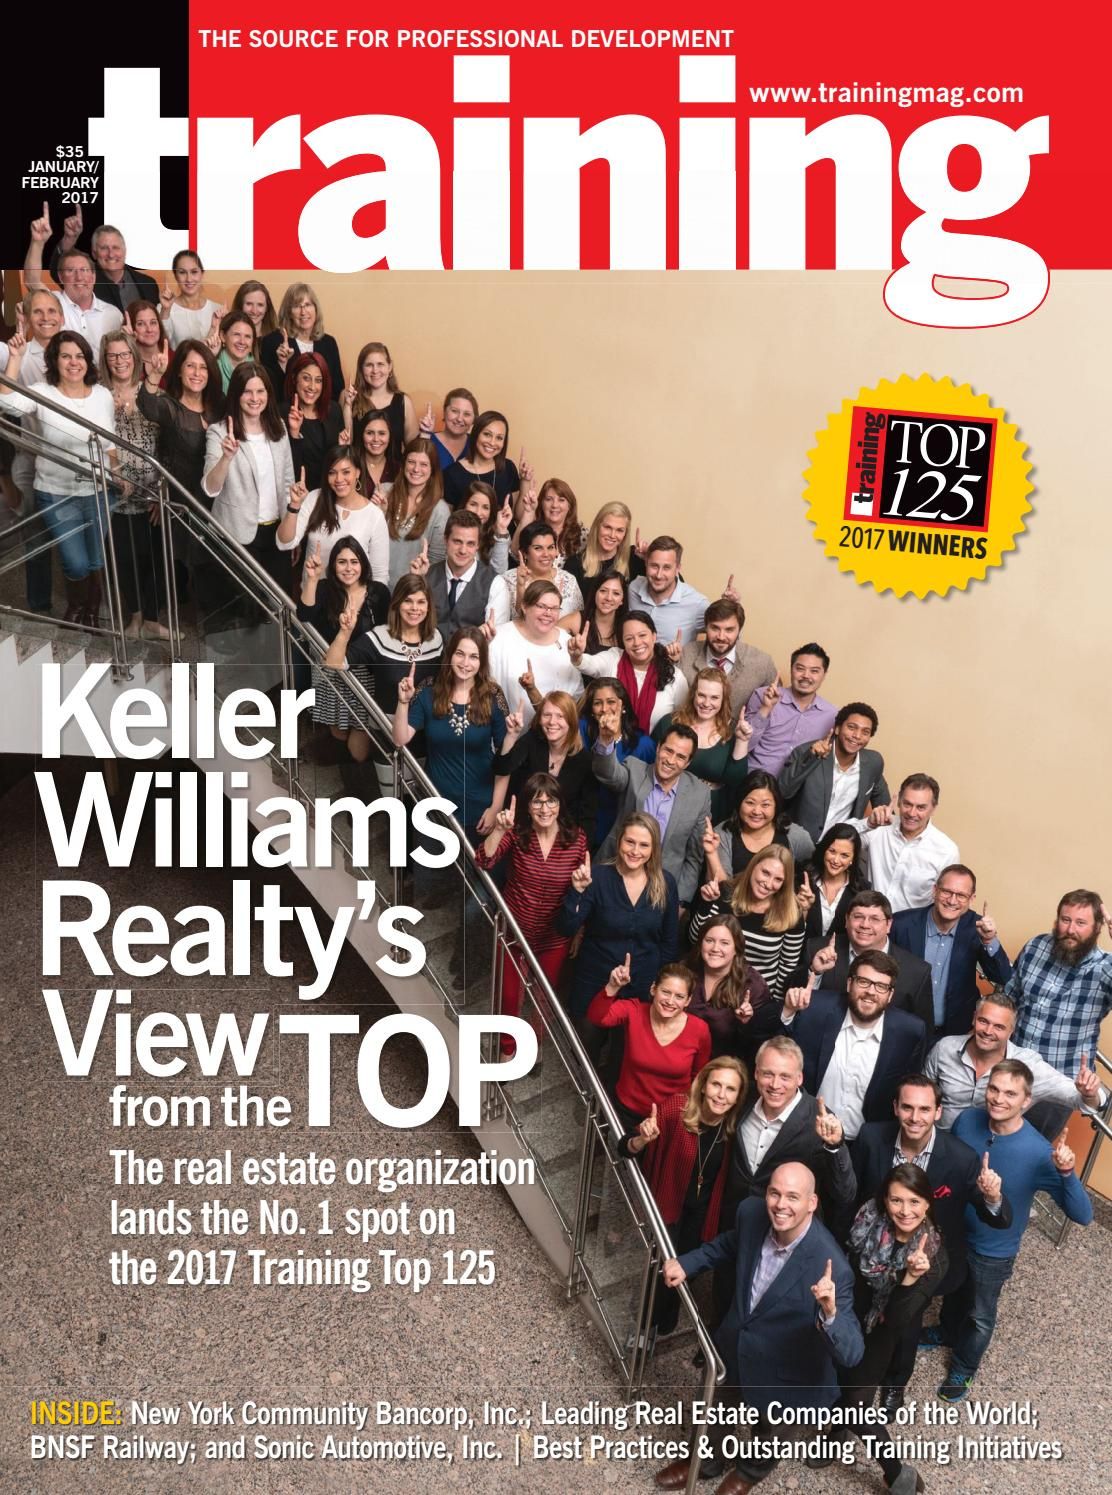 Keller Williams #1 Training Company in the WORLD!